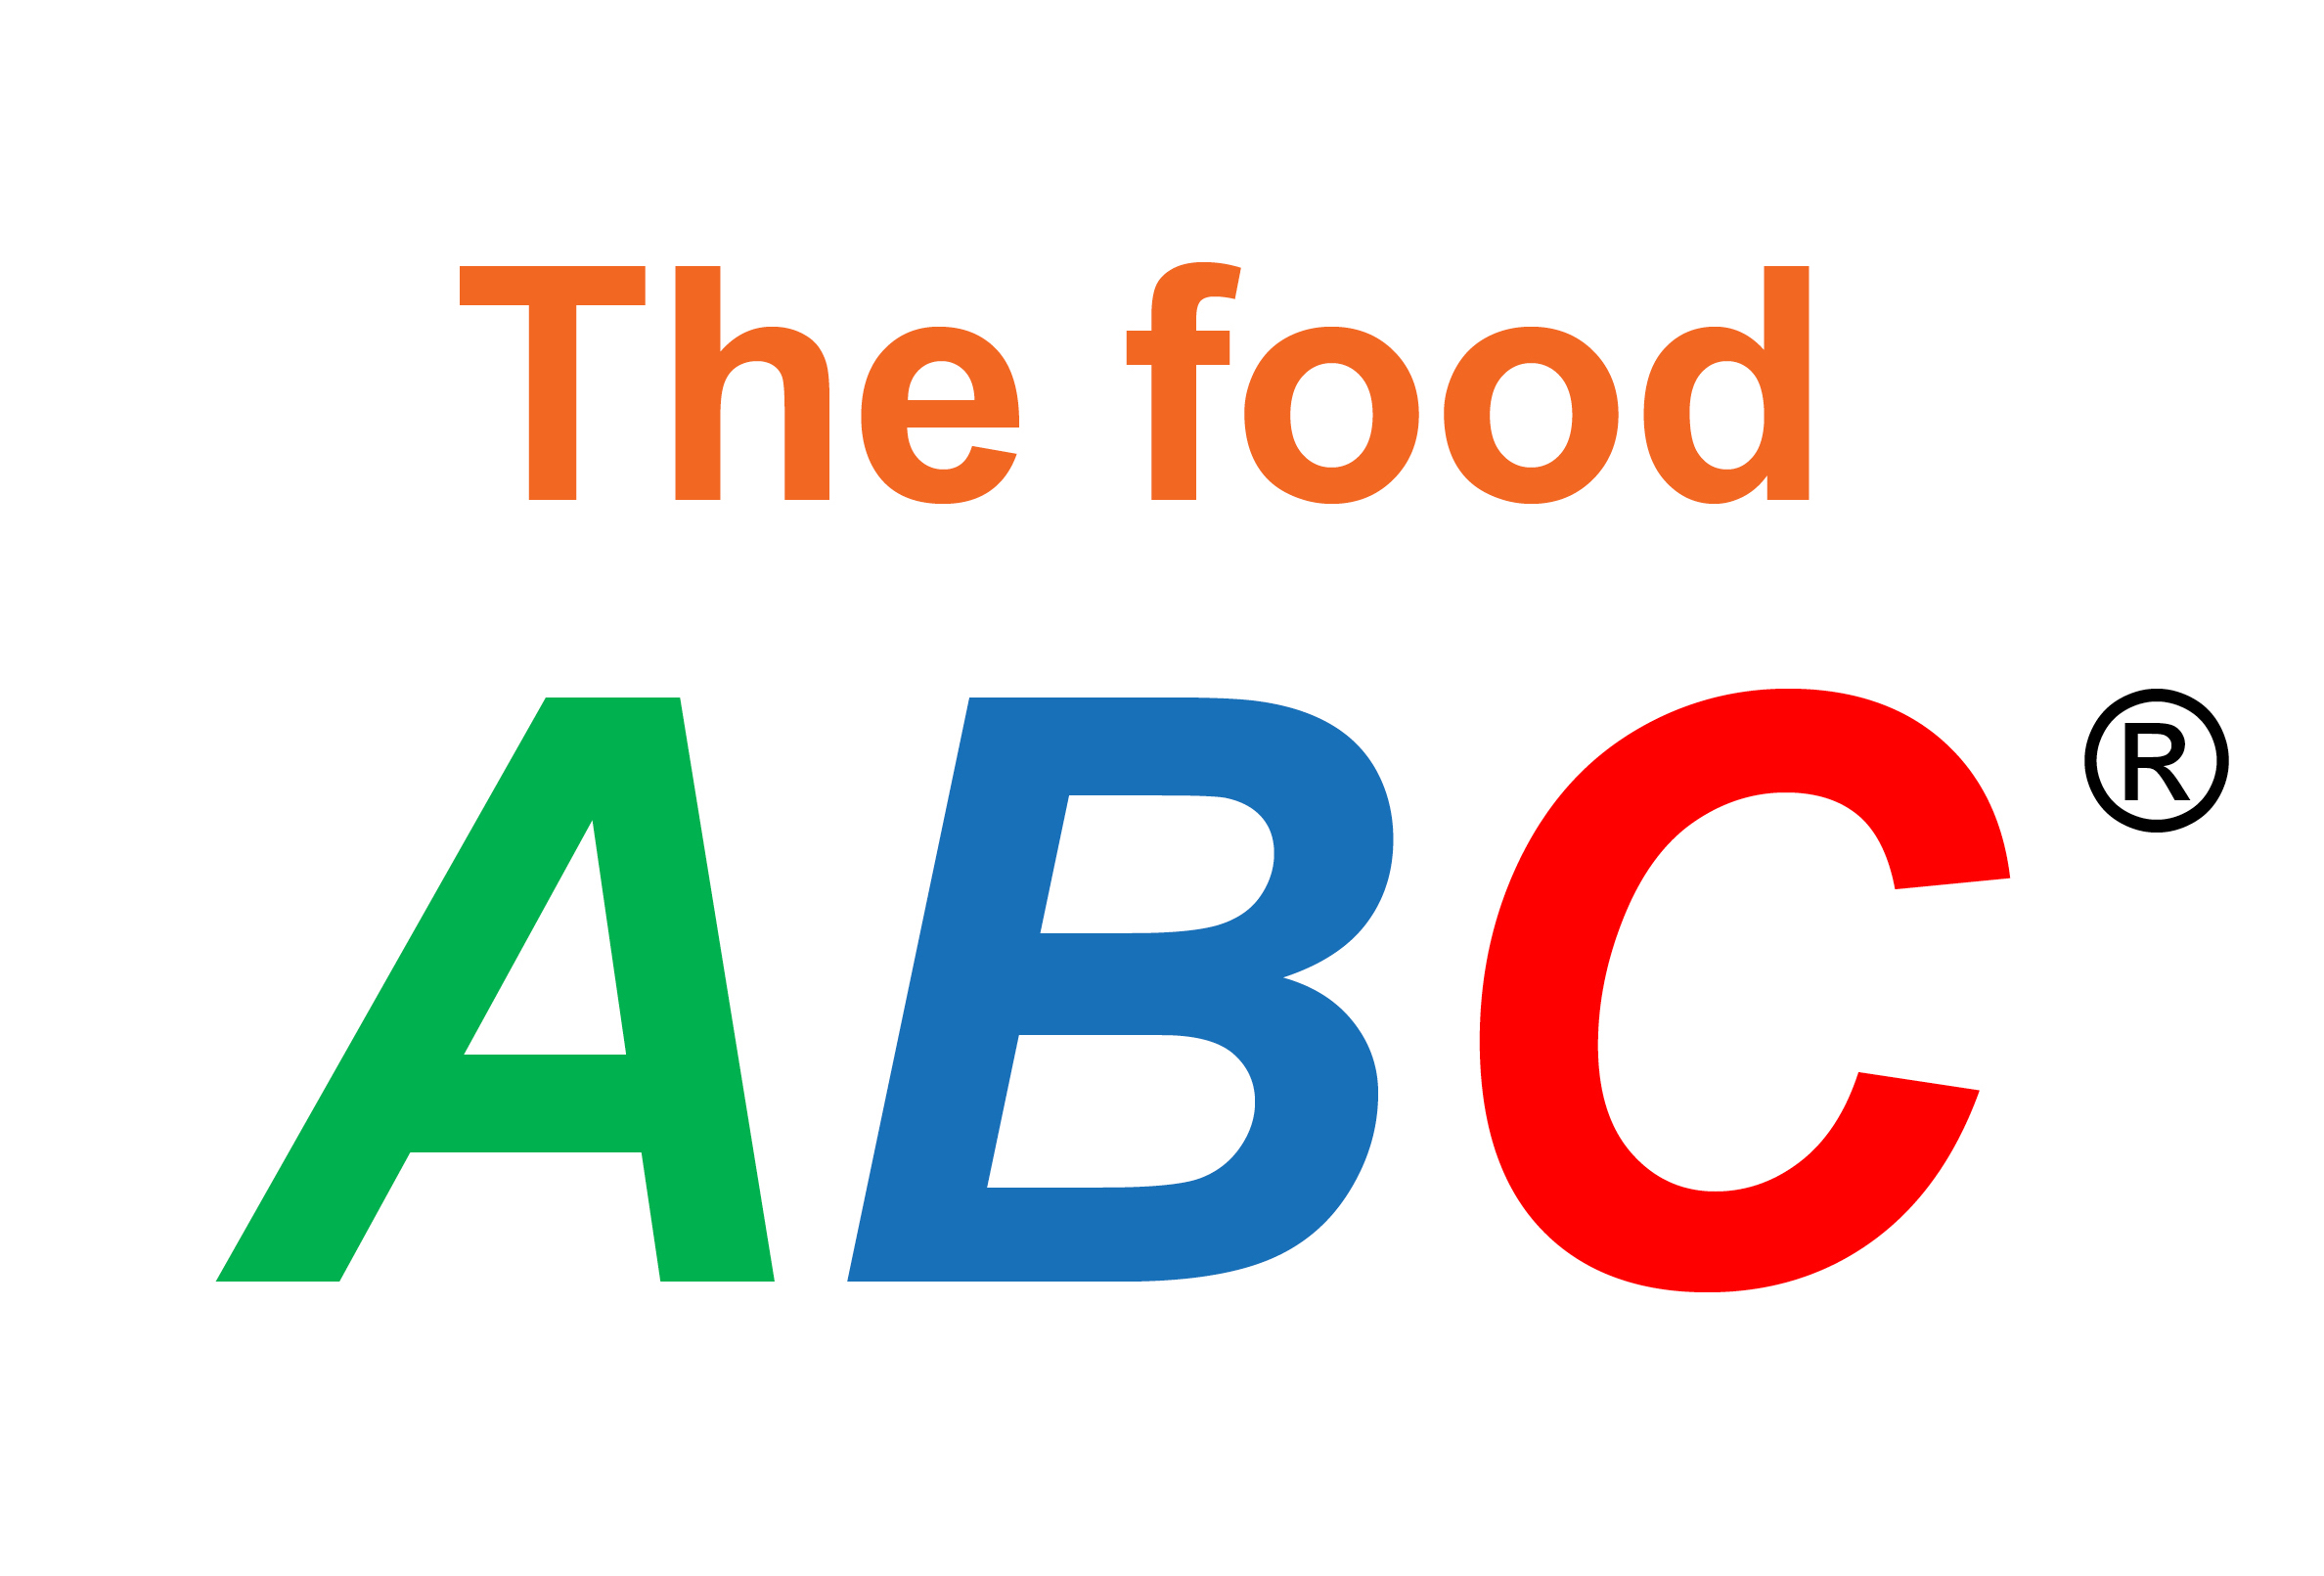 About The Food ABC - Children's Books - Over 6 Years of Age 5